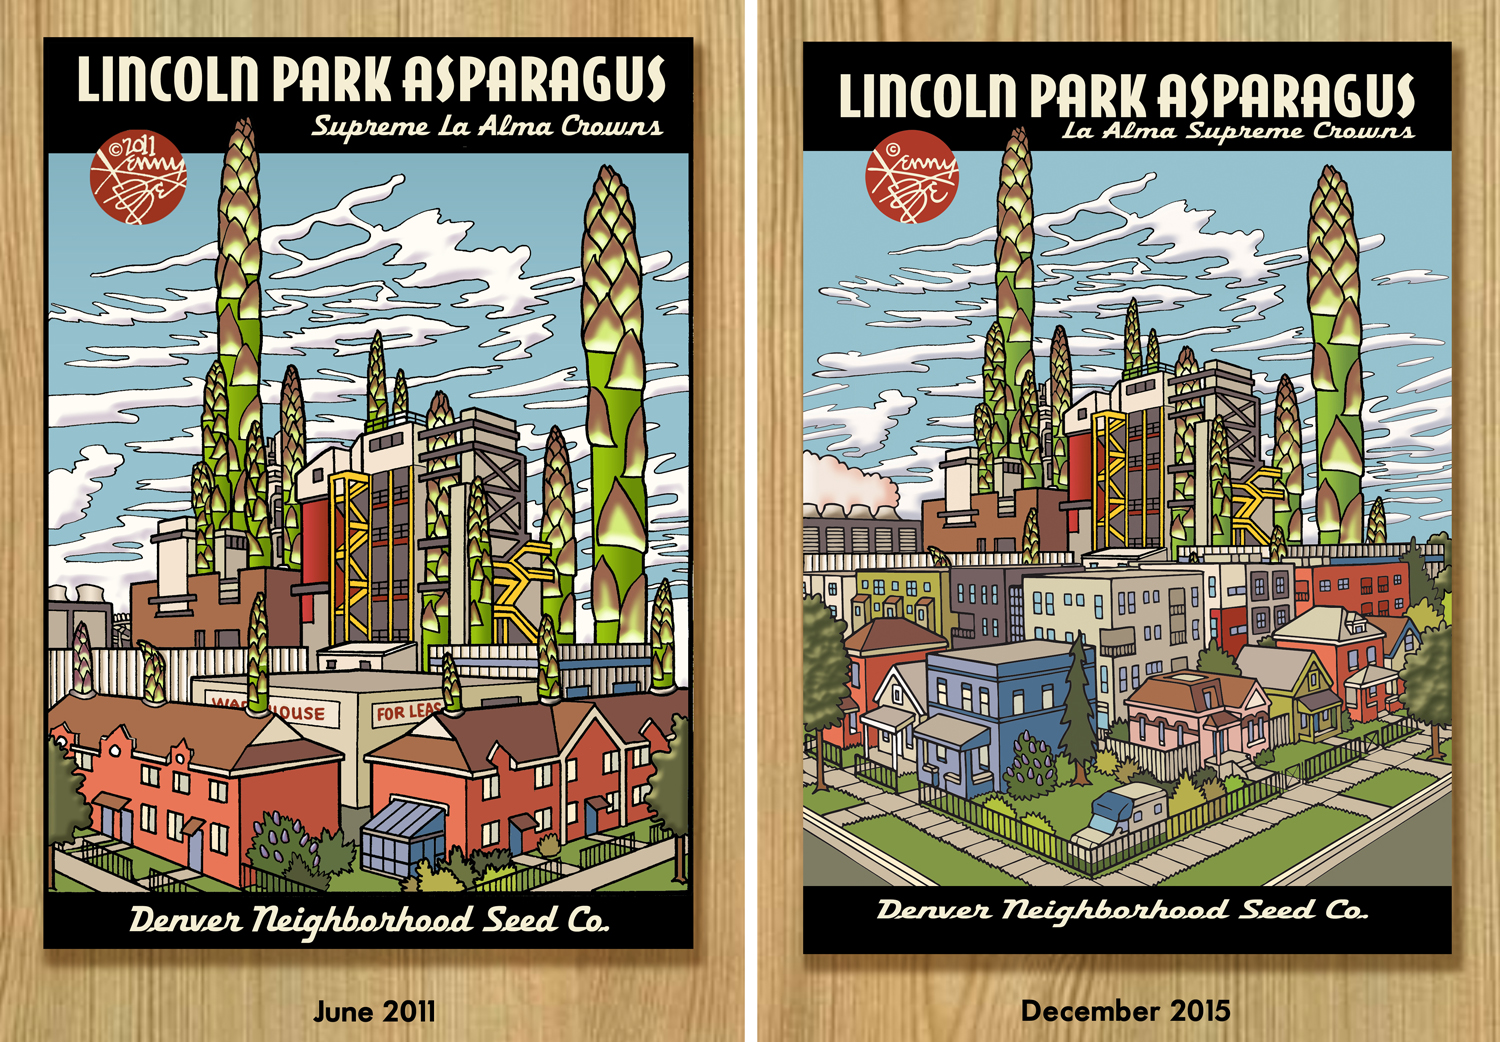 The Lincoln Park Asparagus (La Alma Supreme Crowns) artwork was redrawn to reflect the redevelopment of the neighborhood.